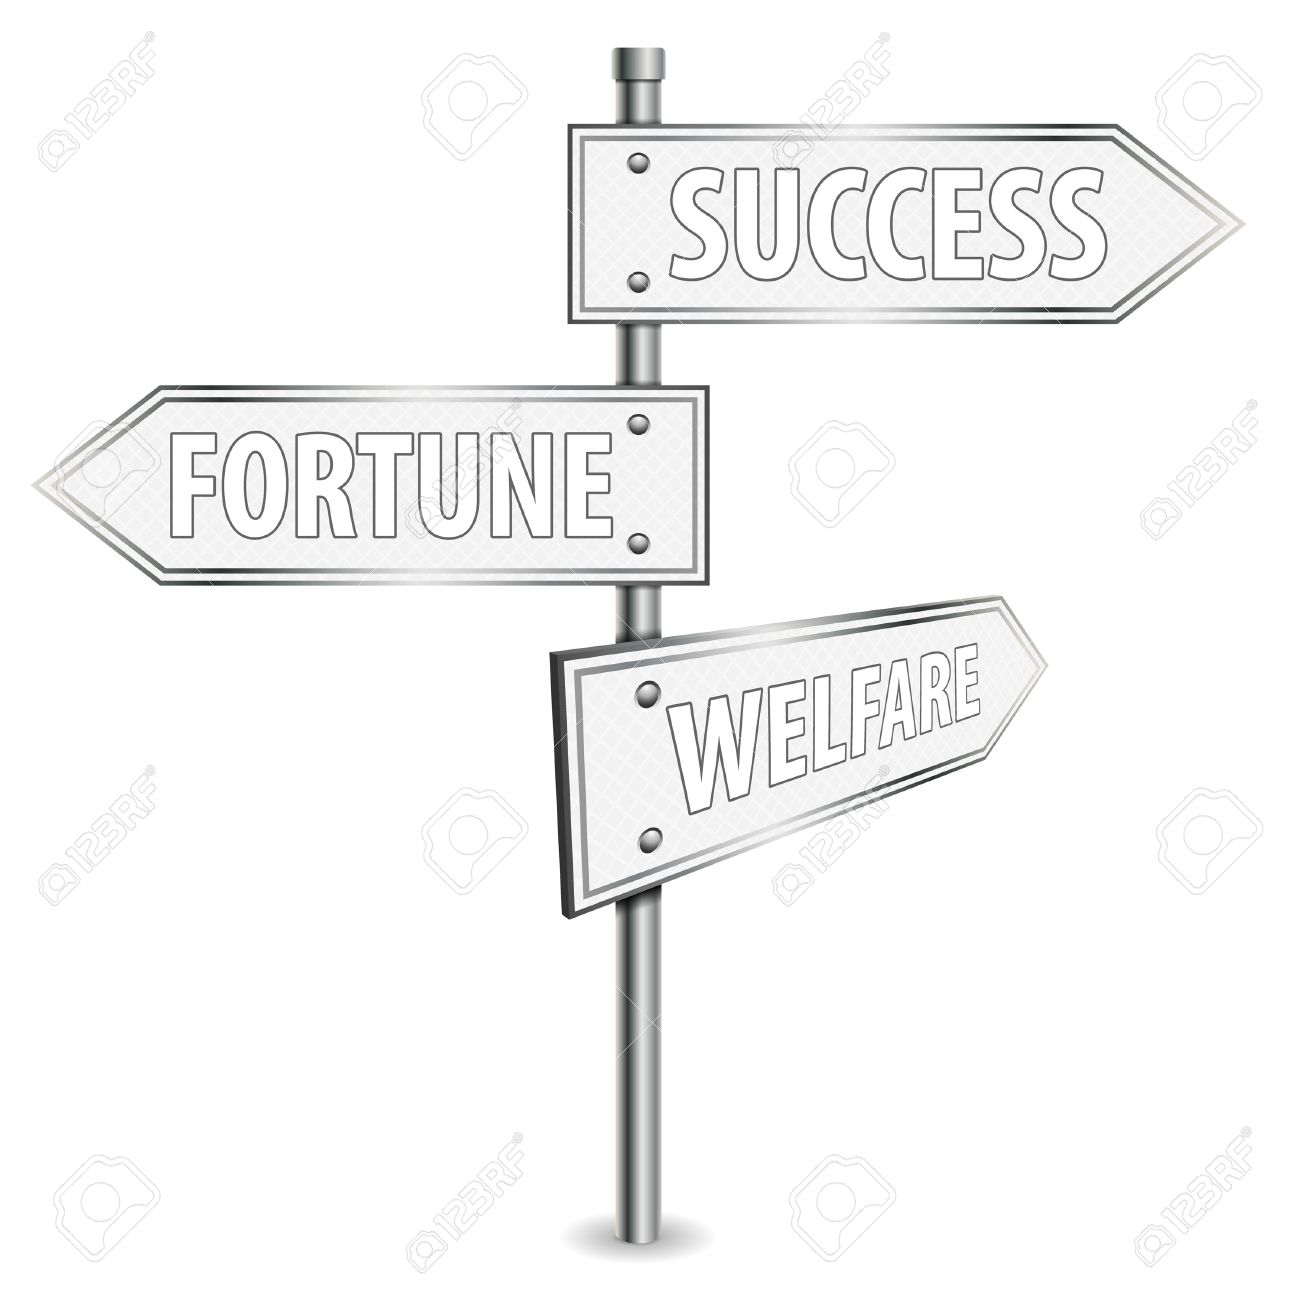 1300x1300 Pole With Success Road Signs, Vector Illustration Royalty Free